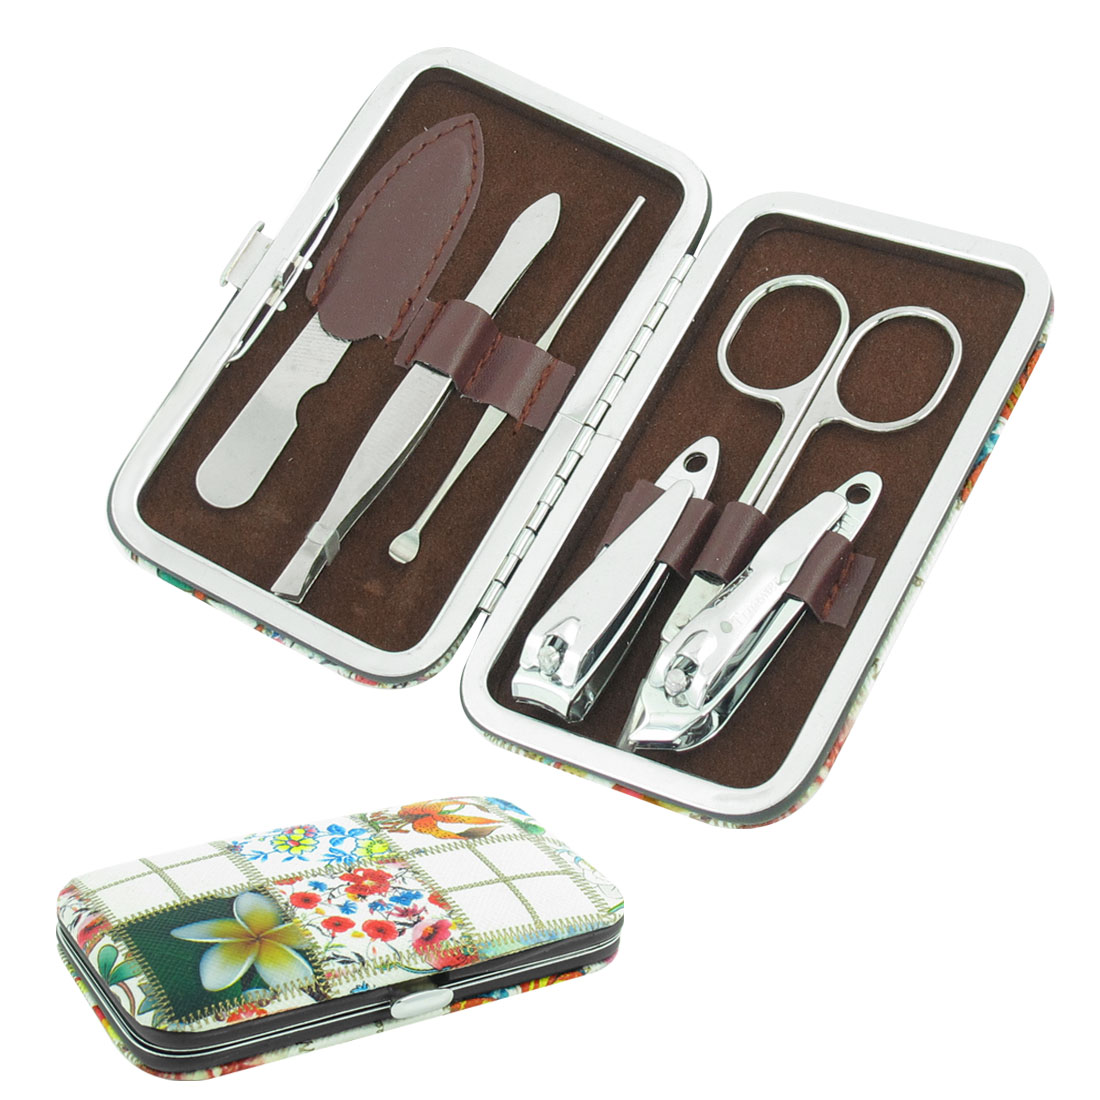 Colorful Case 6 in 1 Professional Manicure Set Nail Clippers Scissors